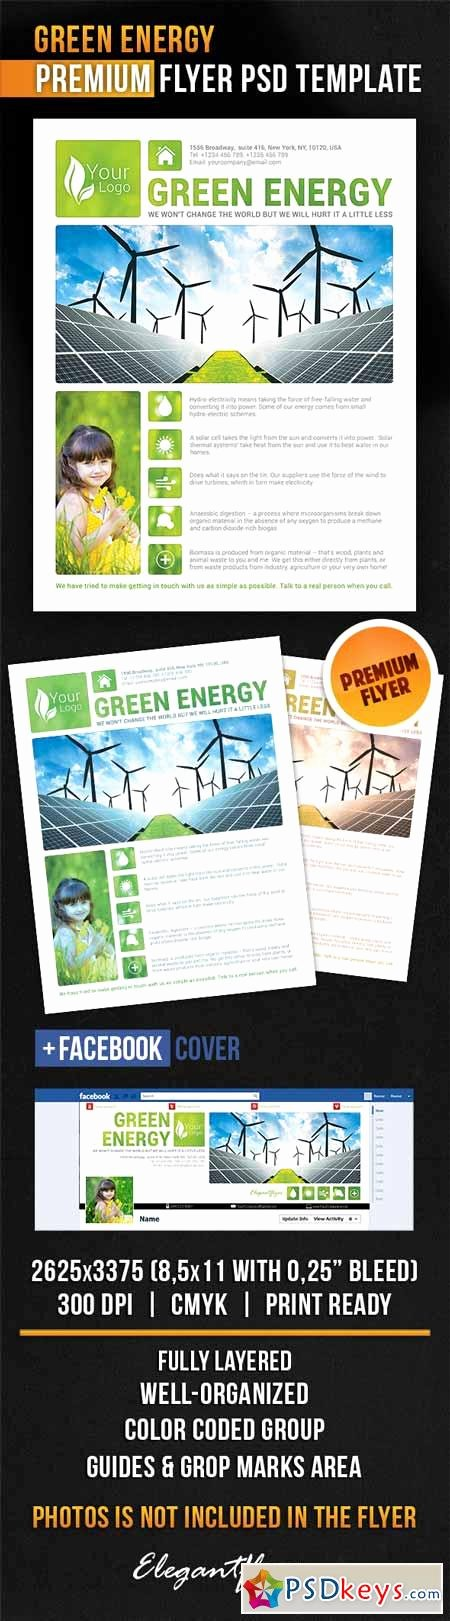 Green Energy – Flyer Psd Template Cover Free